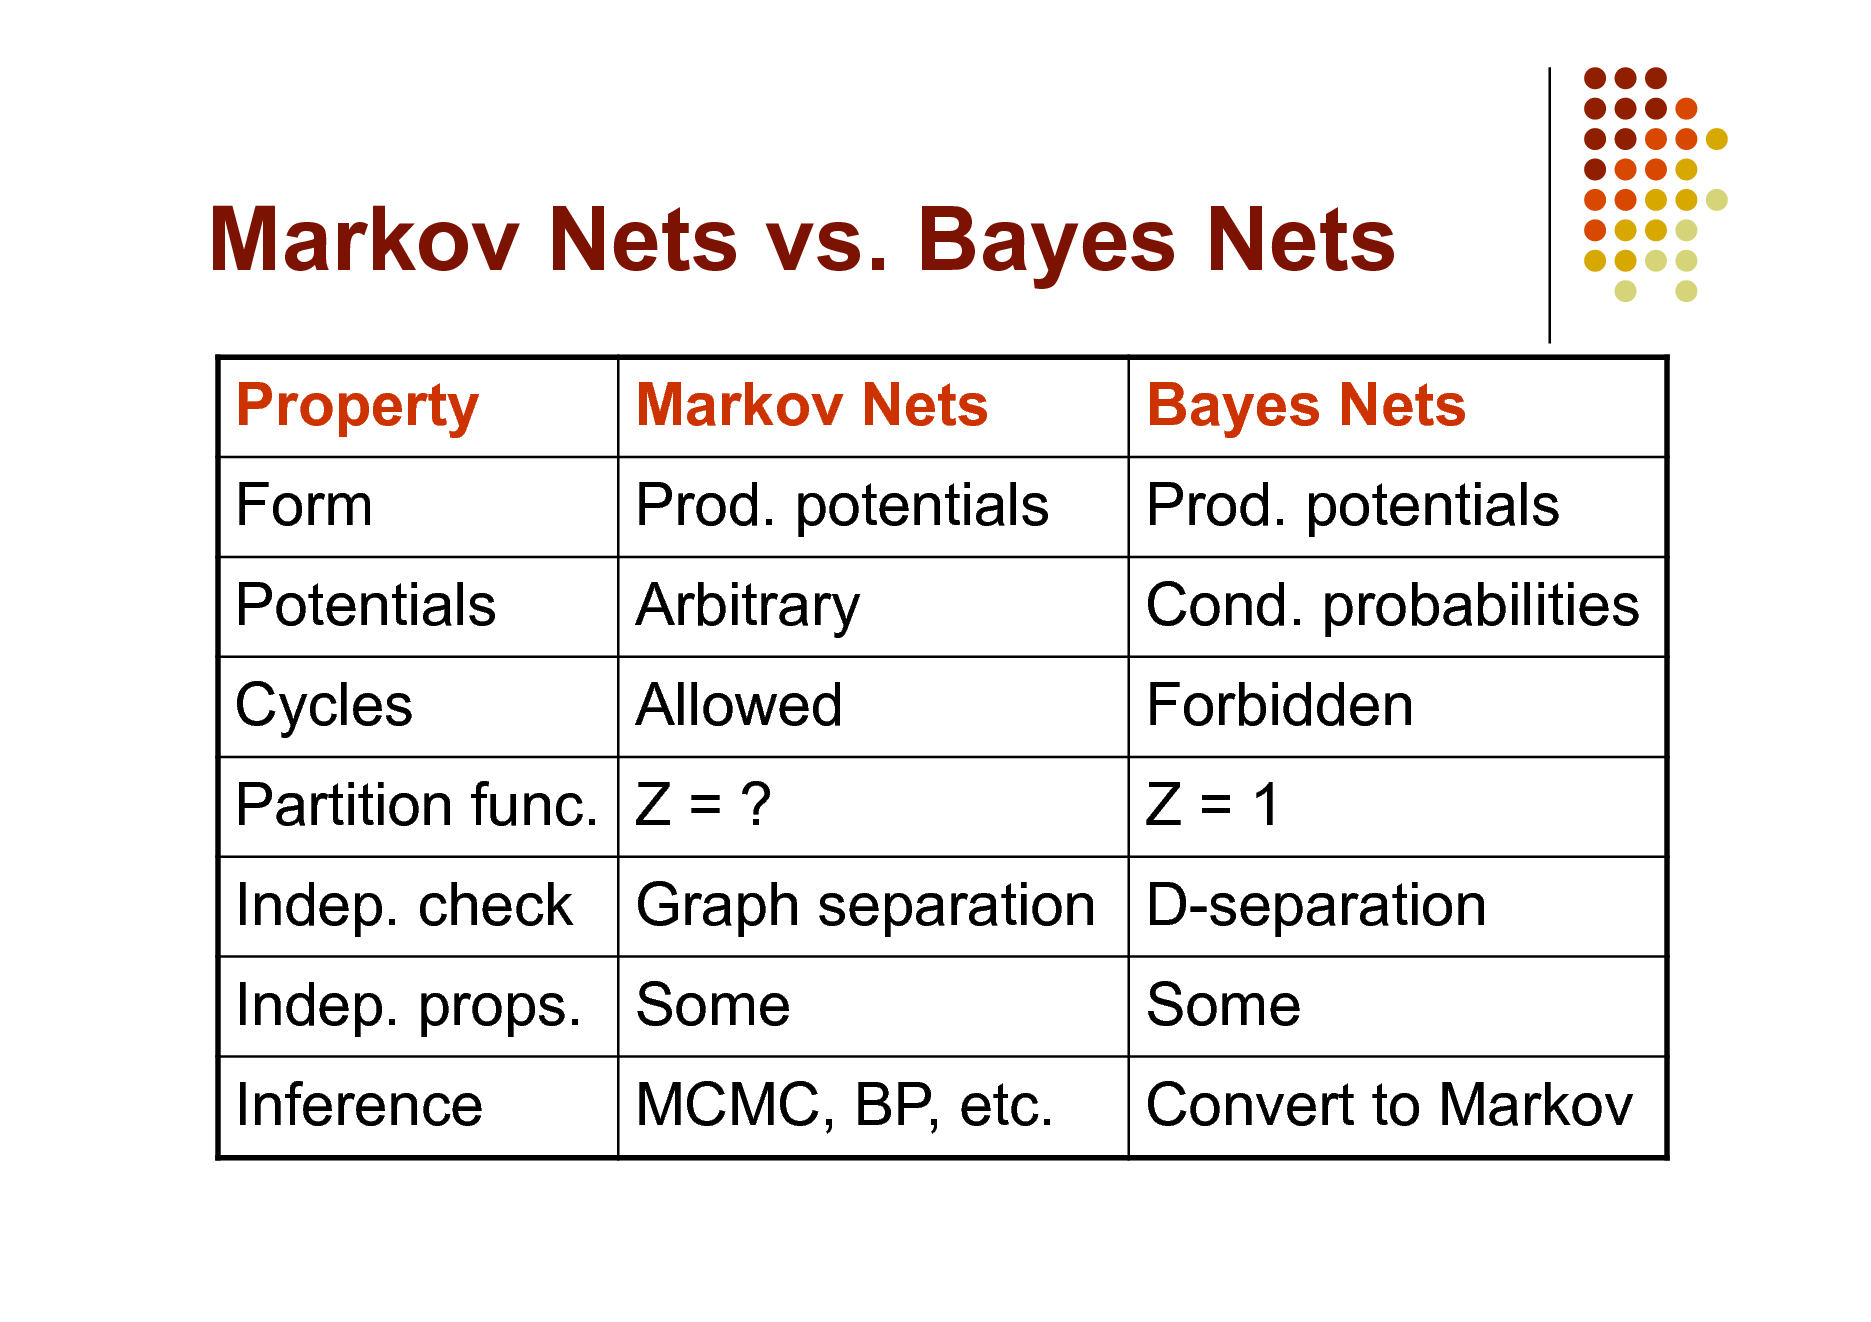 Slide: Markov Nets vs. Bayes Nets Property Form Potentials Cycles Indep. check Inference Markov Nets Prod. potentials Arbitrary Allowed Bayes Nets Prod. potentials Cond. probabilities Forbidden Z=1 Some Convert to Markov  Partition func. Z = ? Indep. props. Some MCMC, BP, etc.  Graph separation D-separation